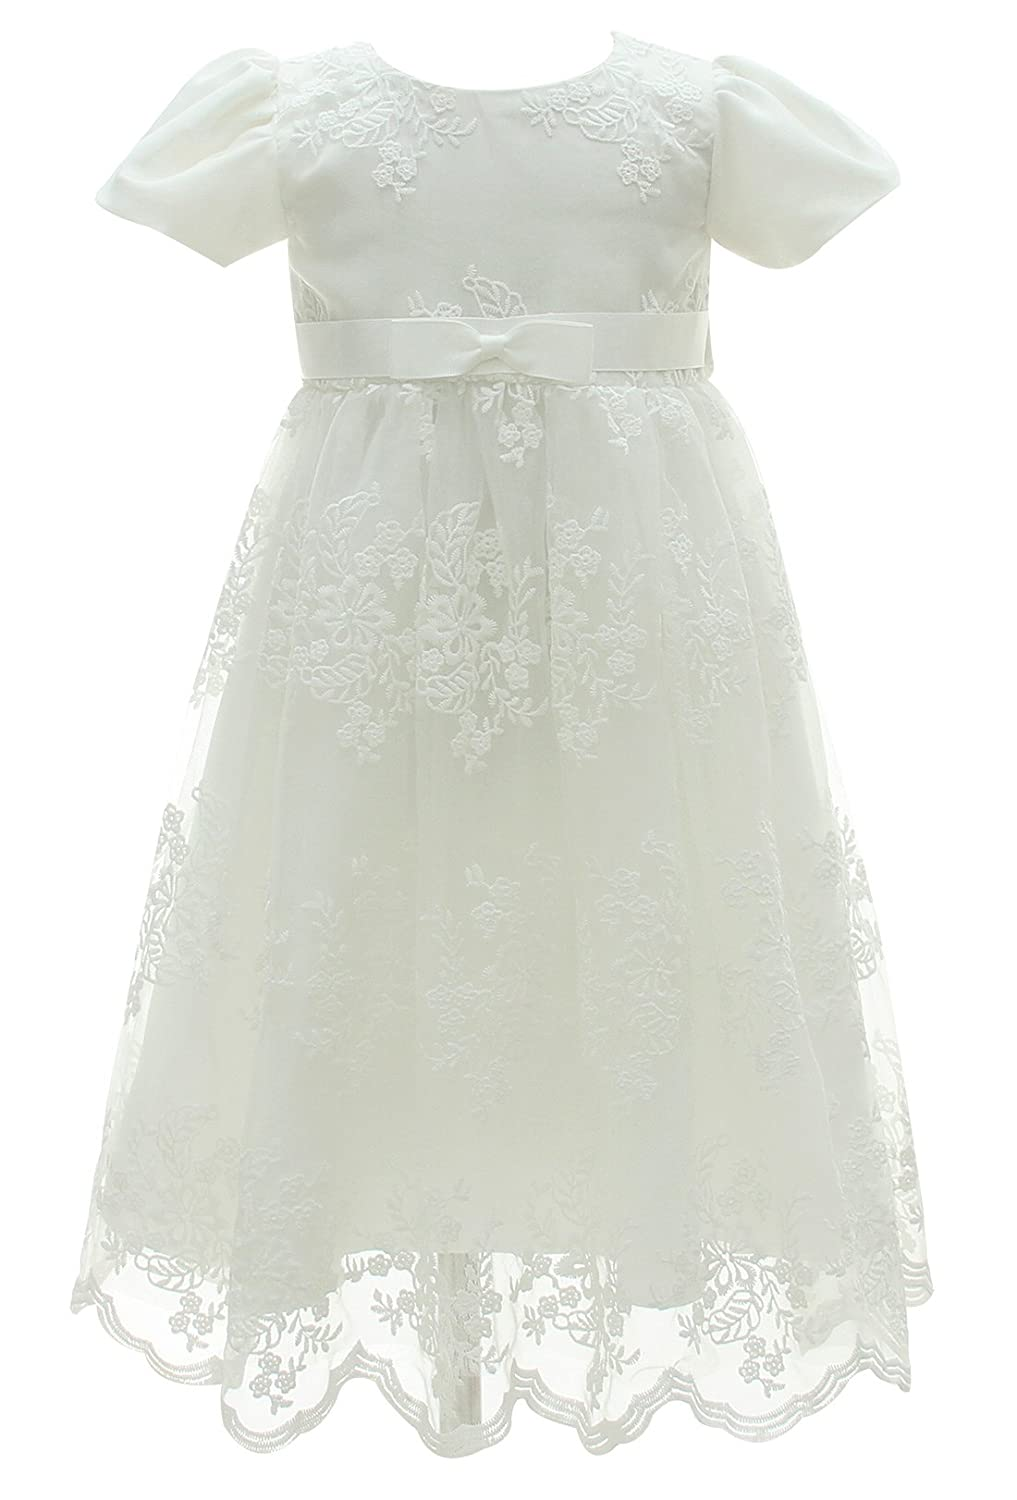 Happy Cherry Baby Dress Princess Floral Lace Gown For Birthday Baptism Wedding